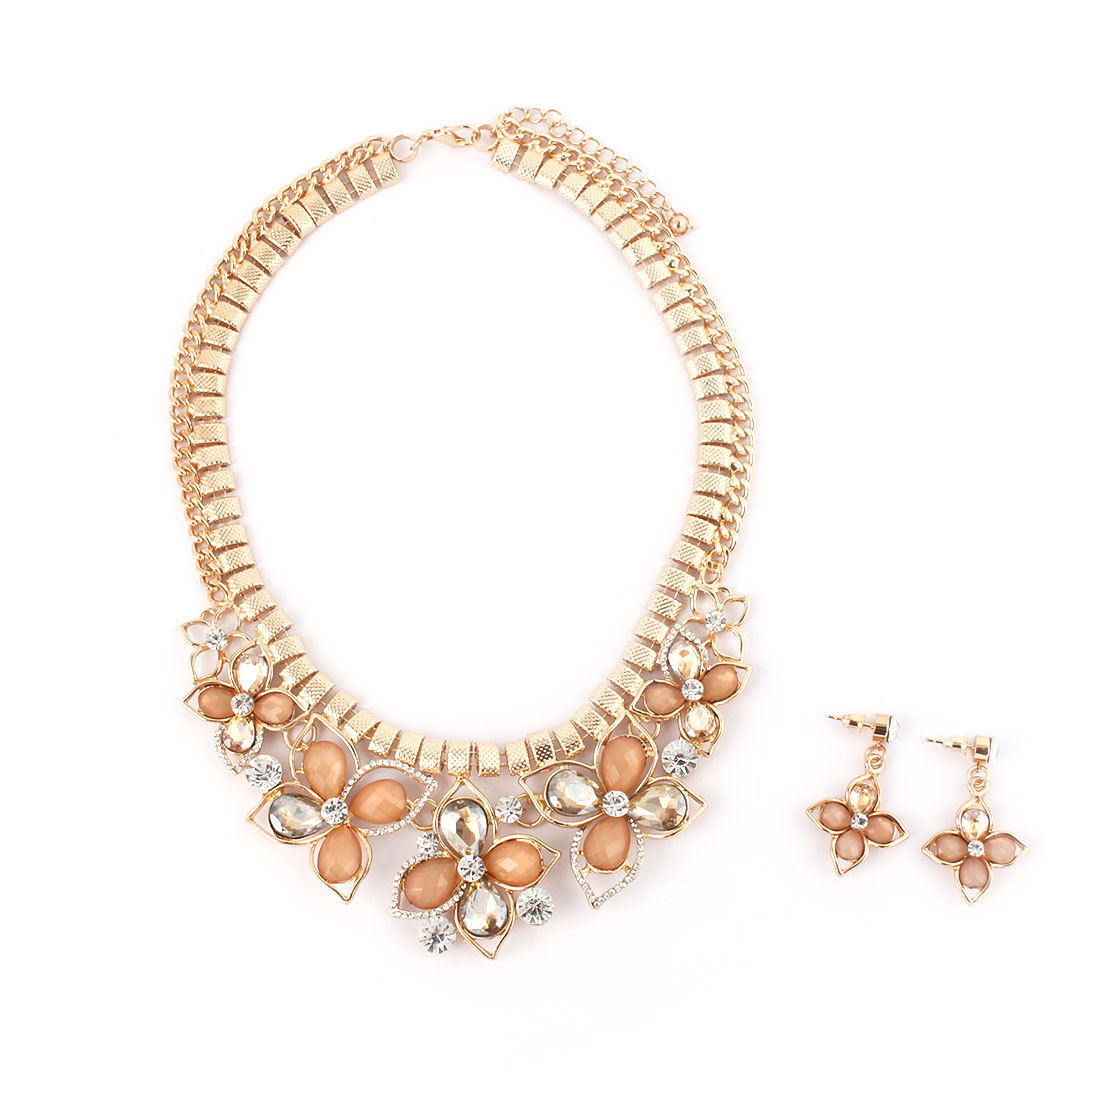 Women Metal Flower Pendant Bib Collar Charming Choker Necklace Earrings Beige Set